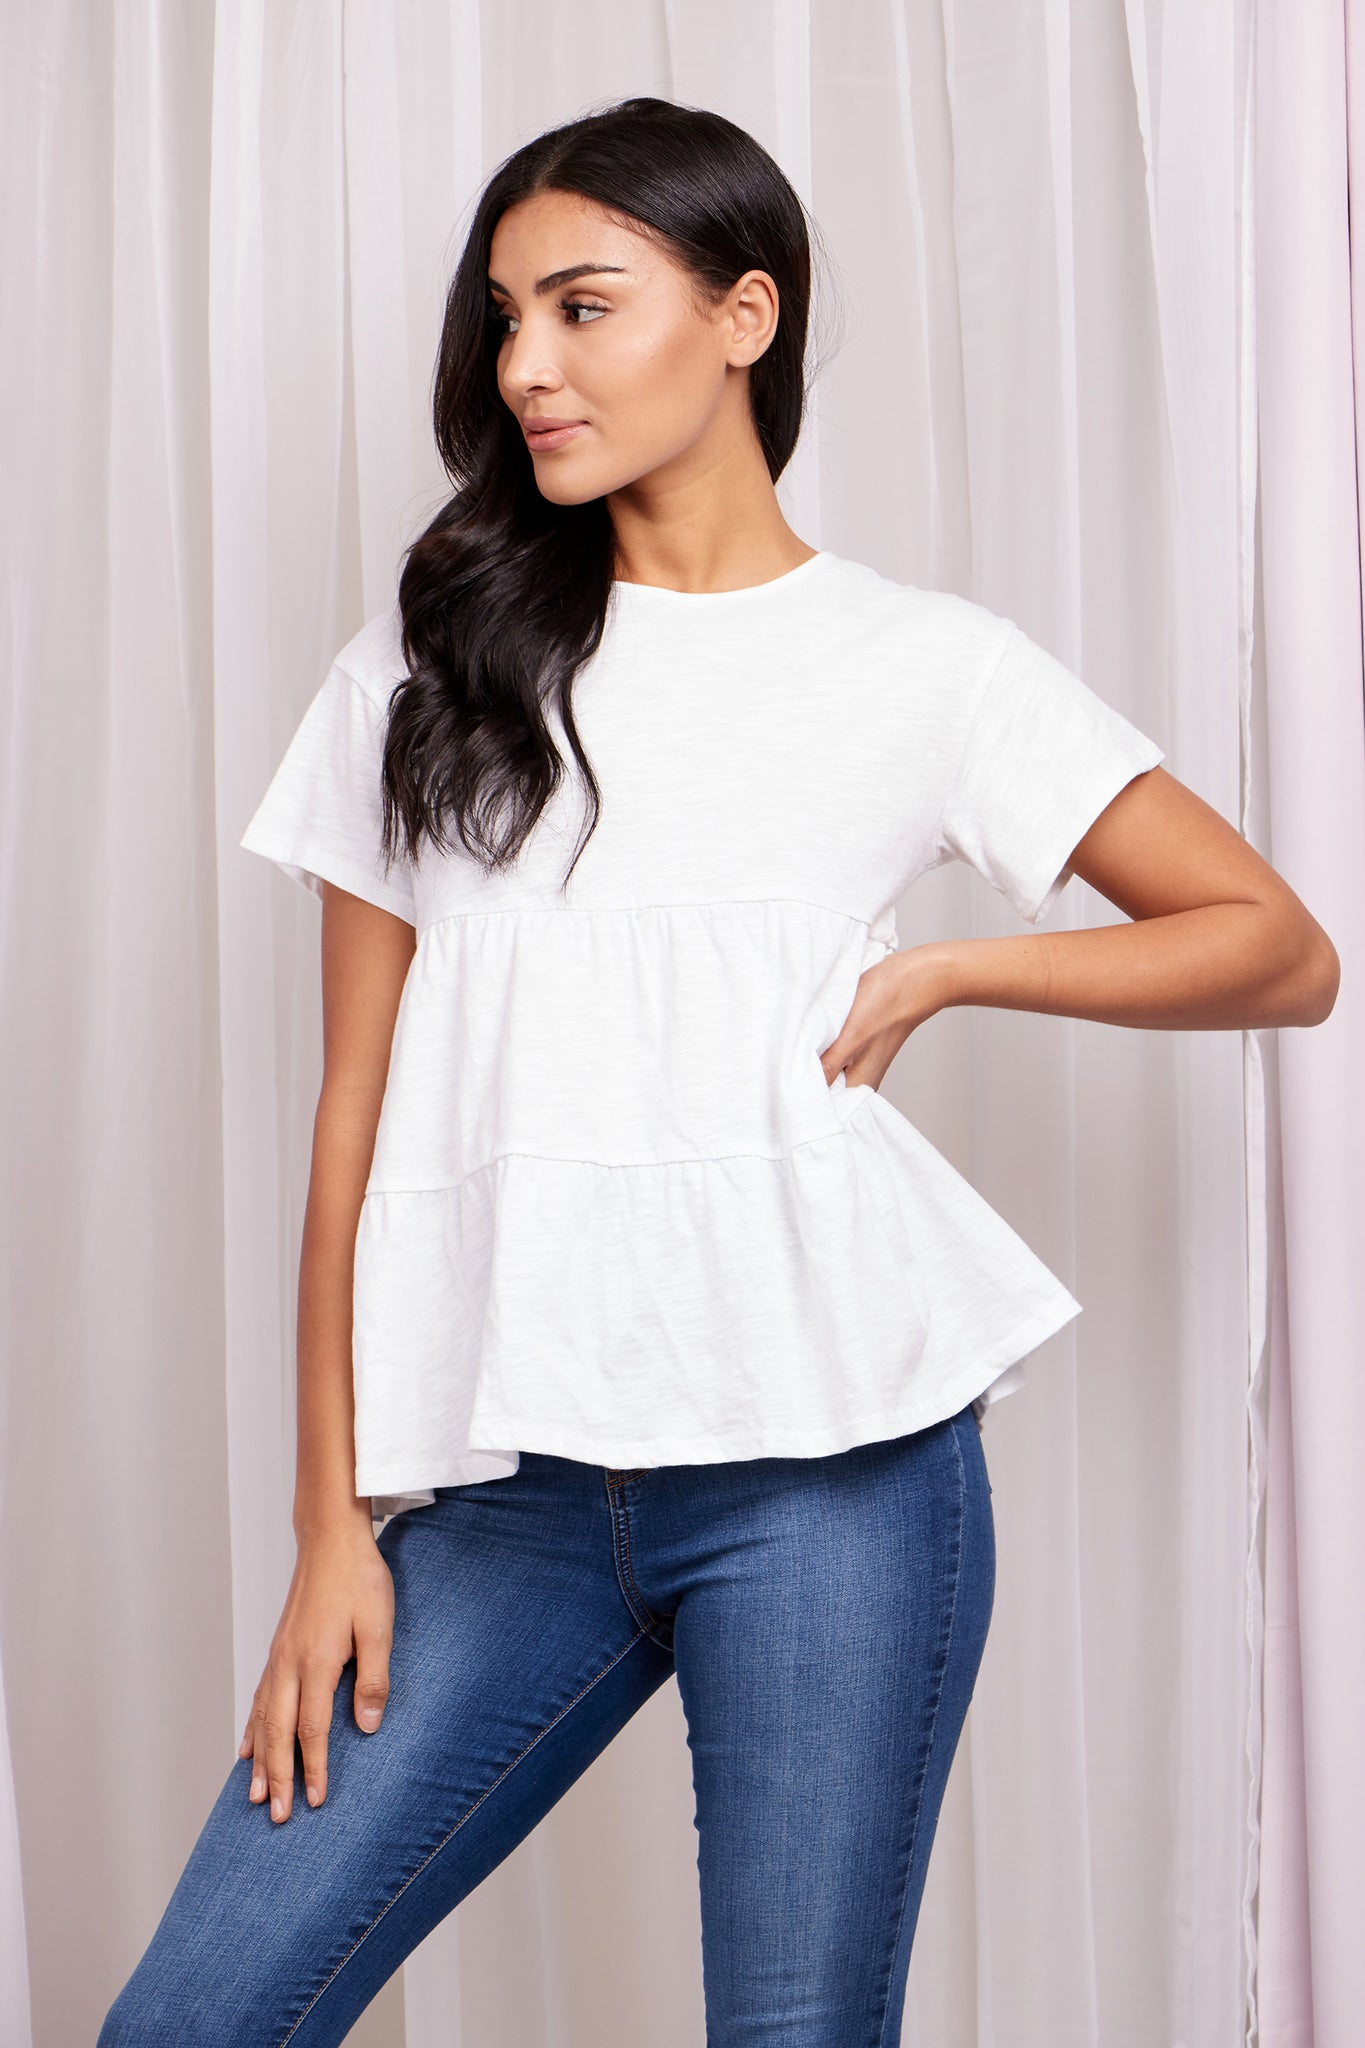 Two Tier Cotton Tshirt